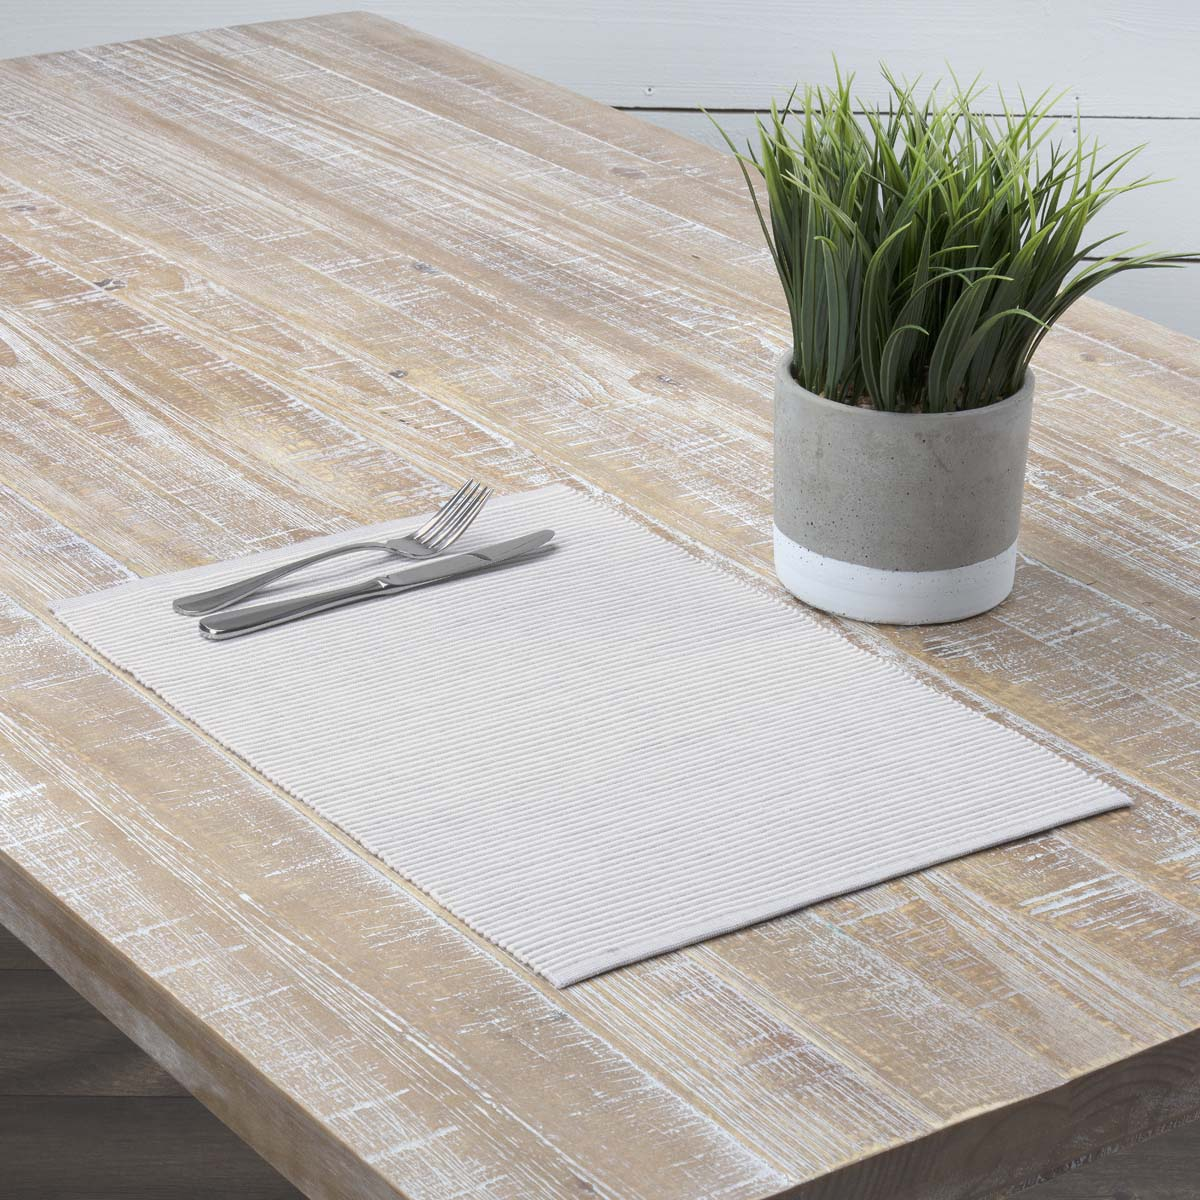 Dusty Shale Grey Farmhouse Tabletop Kitchen Ashton Cotton Striped Rectangle Placemat Set of 6